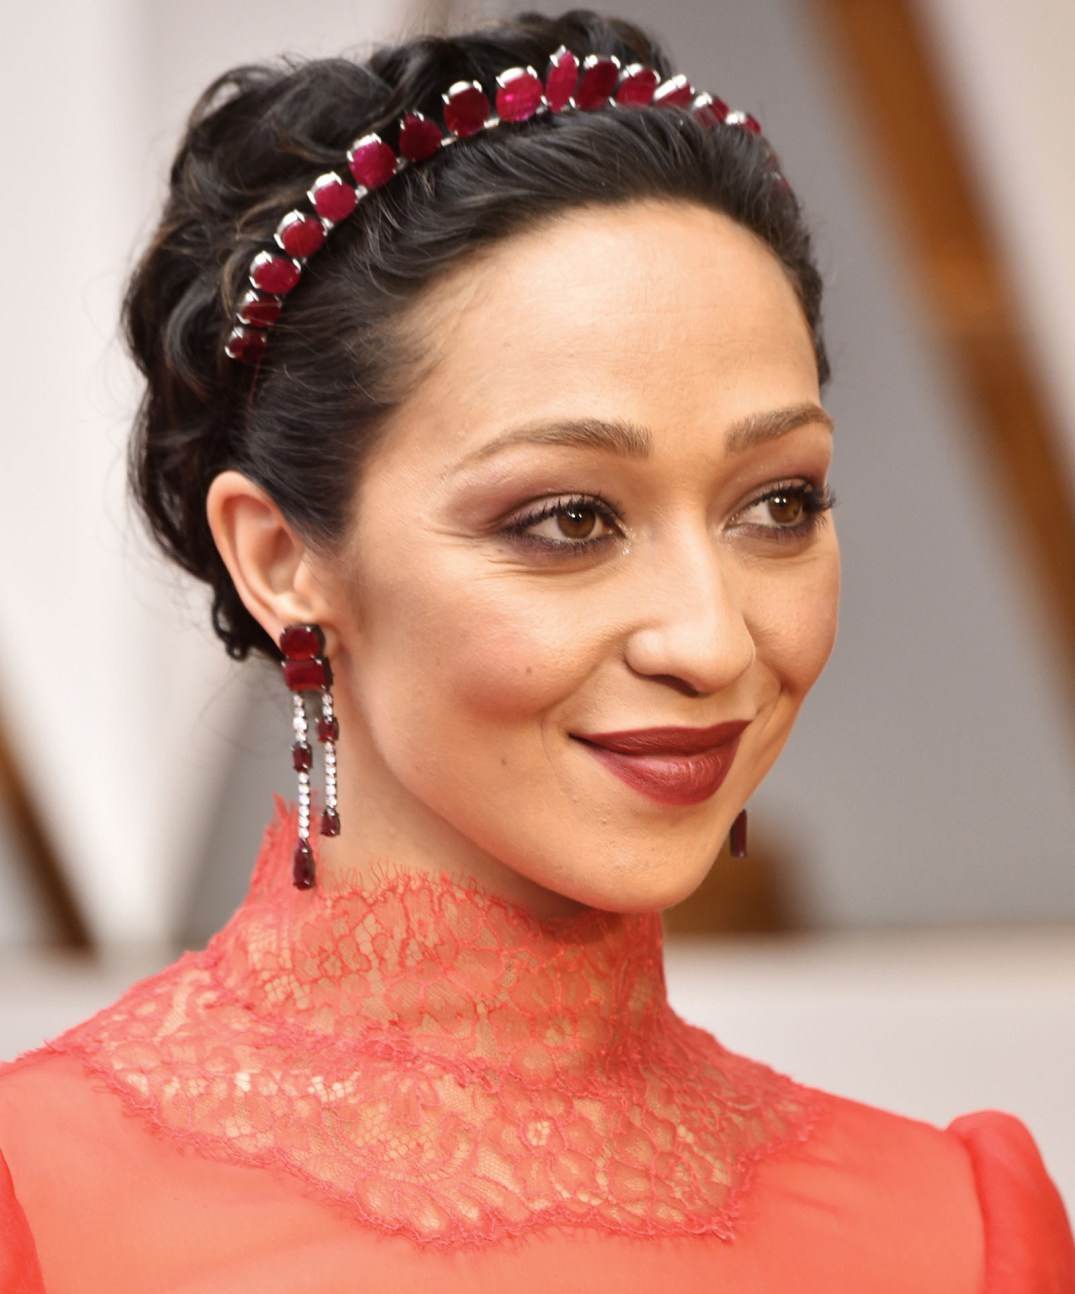 Ruby Rules! Ruth Negga wears an Irene Neuwirth with Mozambique Rubies by Gemfields. Her head jewelry is studded with 146.16 carats of Gemfields Mozambican rubies, the earrings are studded with 37.18 carats of Gemfields Mozambican rubies and 3.26 carats of diamonds. She also wore a 14.89 carat ring Gemfields Mozambican ruby ring surrounded with white pave set diamond in blackened white gold. PC- Forbes